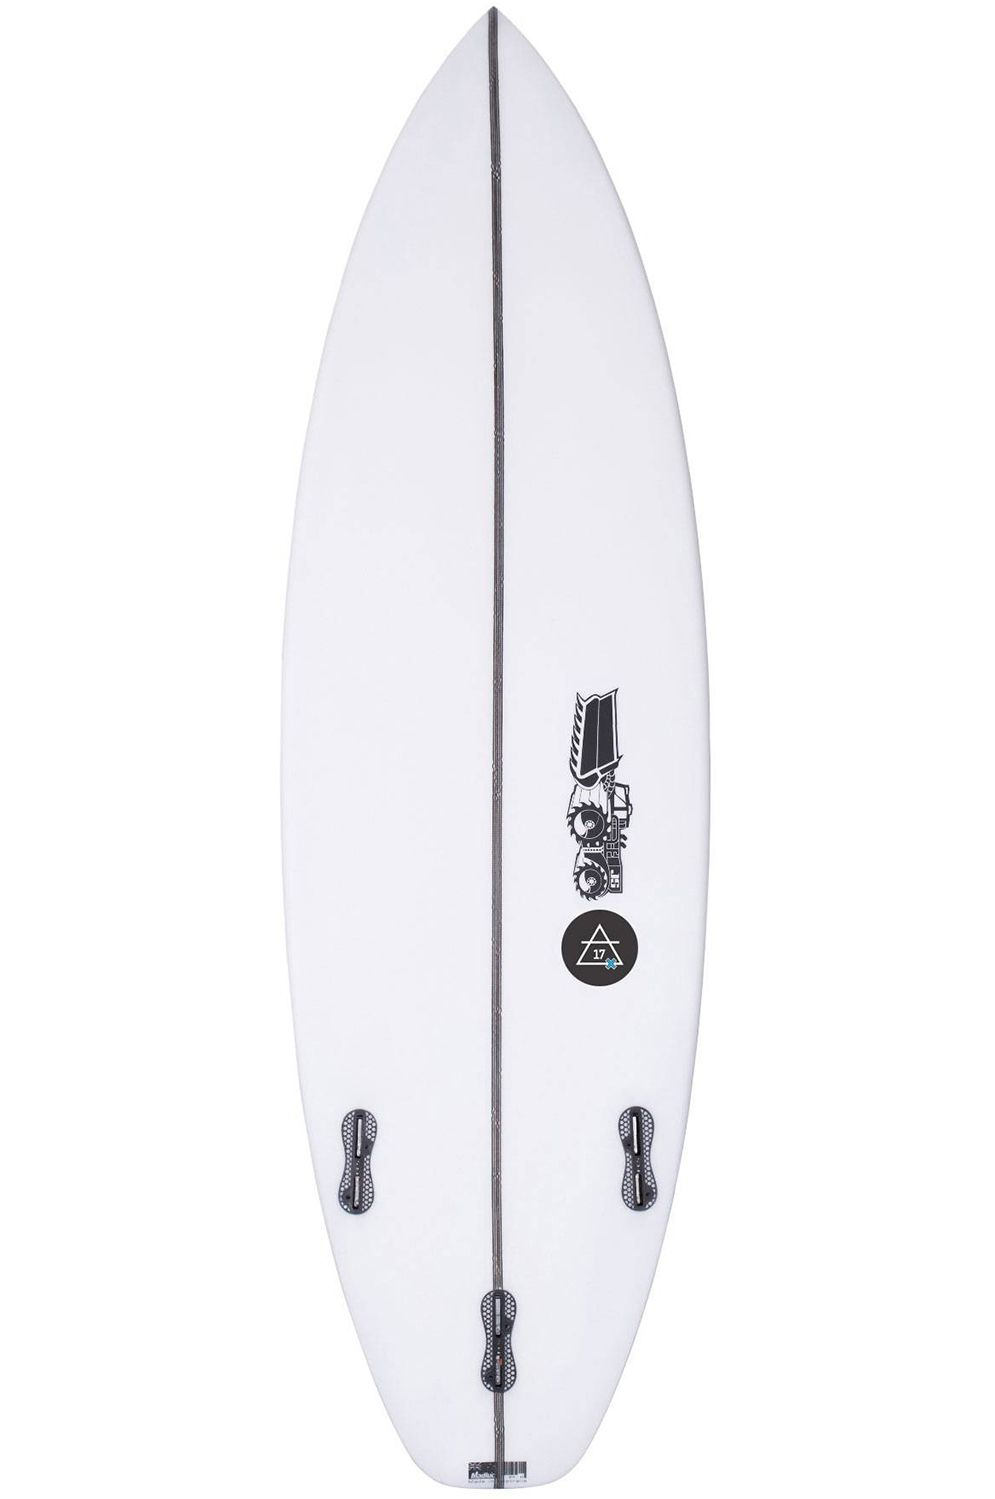 Prancha Surf JS JULIAN AIR- 17X 6'2 Squash Tail - White FCS II 6ft2